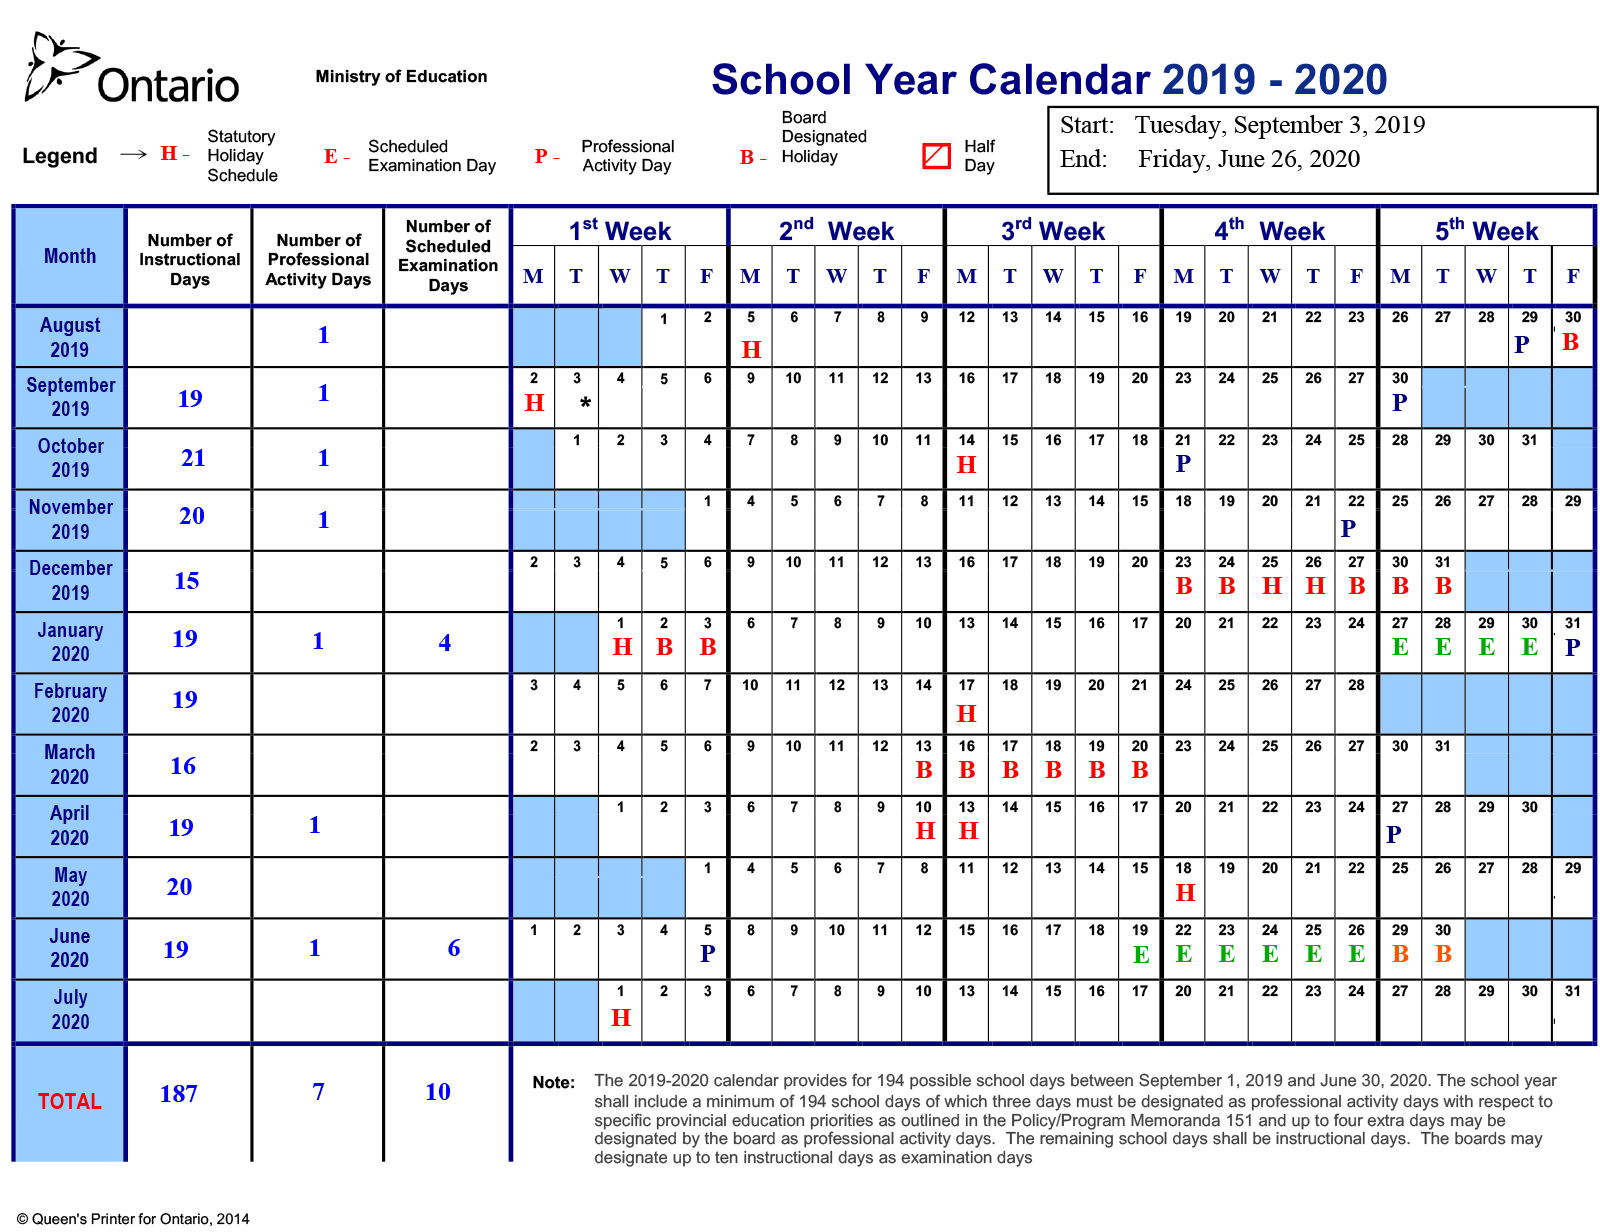 School Year Calendar 20192020 – Near North District School pertaining to Near North District School Board Calendar